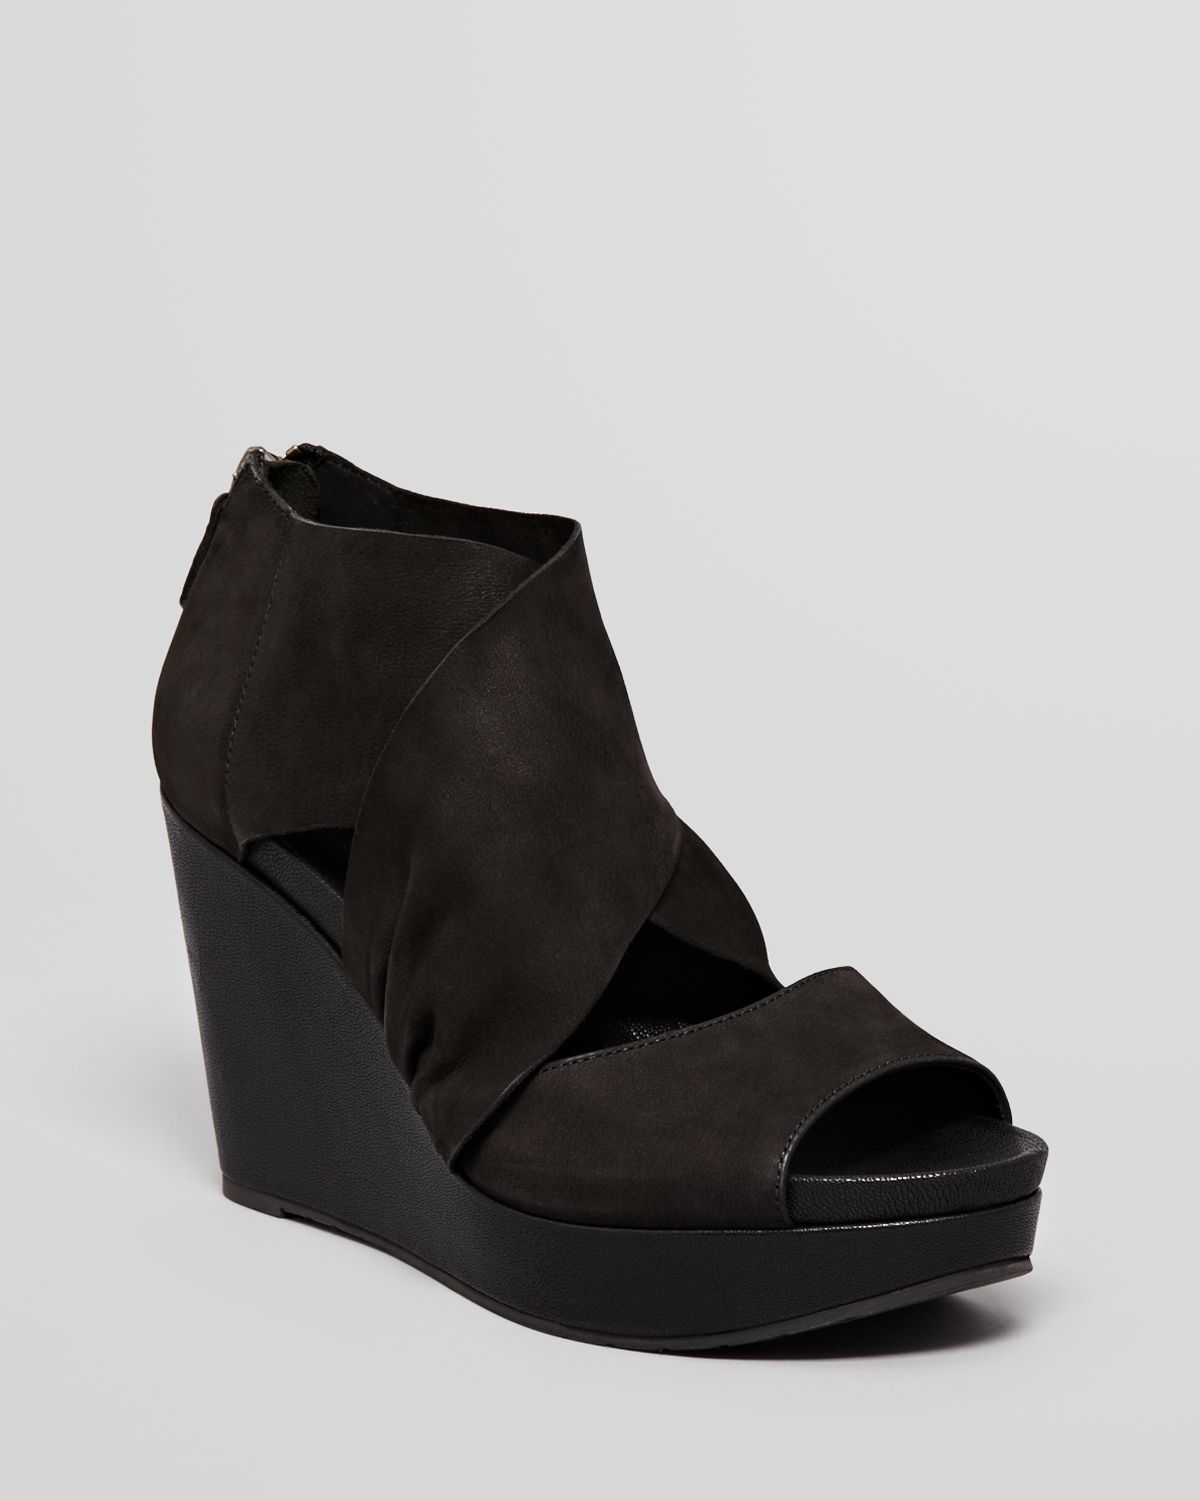 1a381a7d2ac9e Lyst - Eileen Fisher Open Toe Platform Wedge Sandals Draw in Black